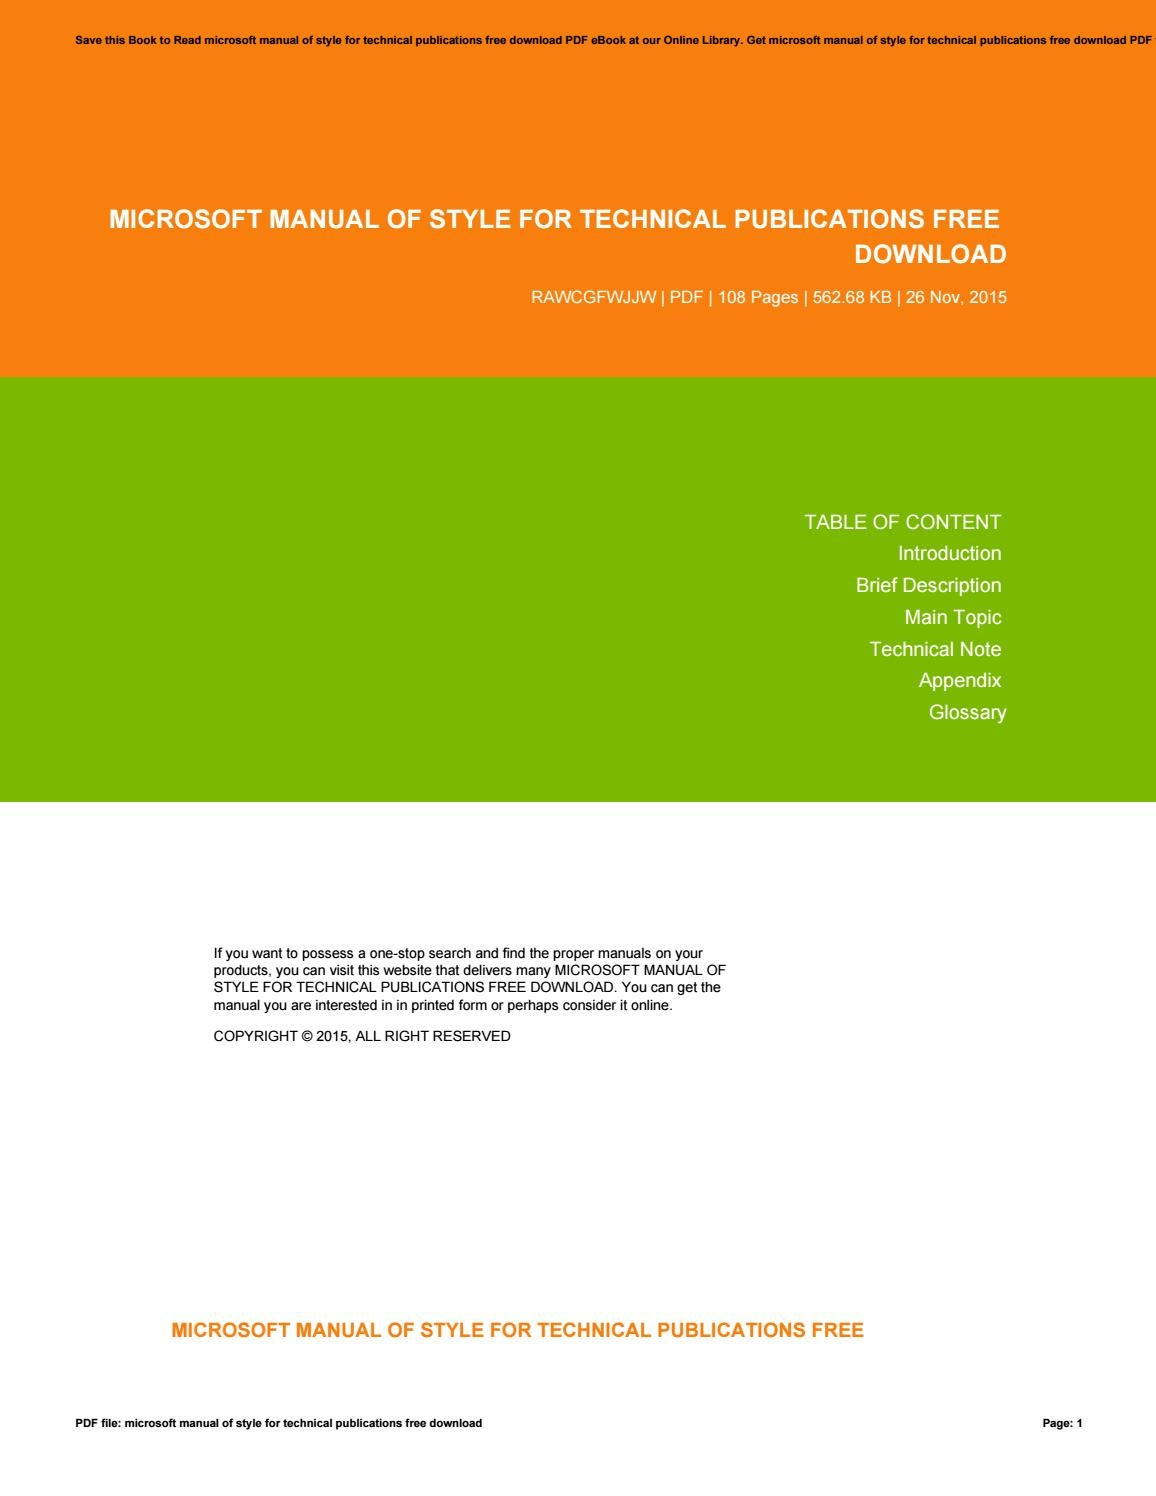 complete technical manuals free download